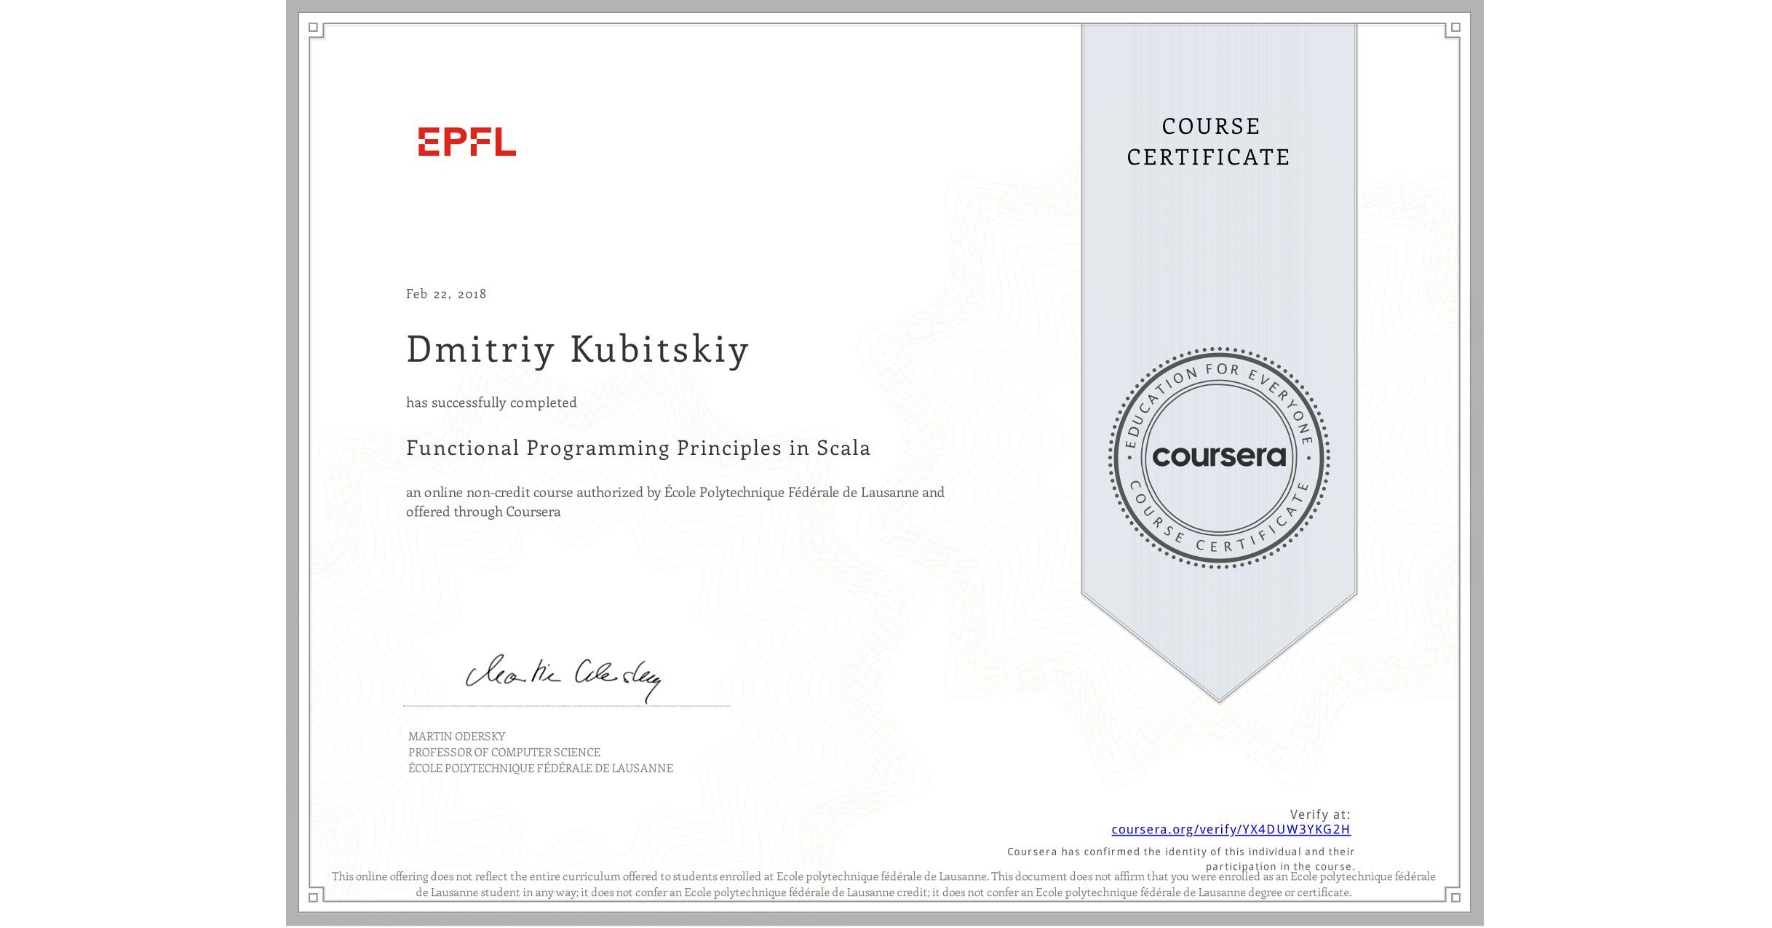 View certificate for Dmitriy Kubitskiy, Functional Programming Principles in Scala, an online non-credit course authorized by École Polytechnique Fédérale de Lausanne and offered through Coursera